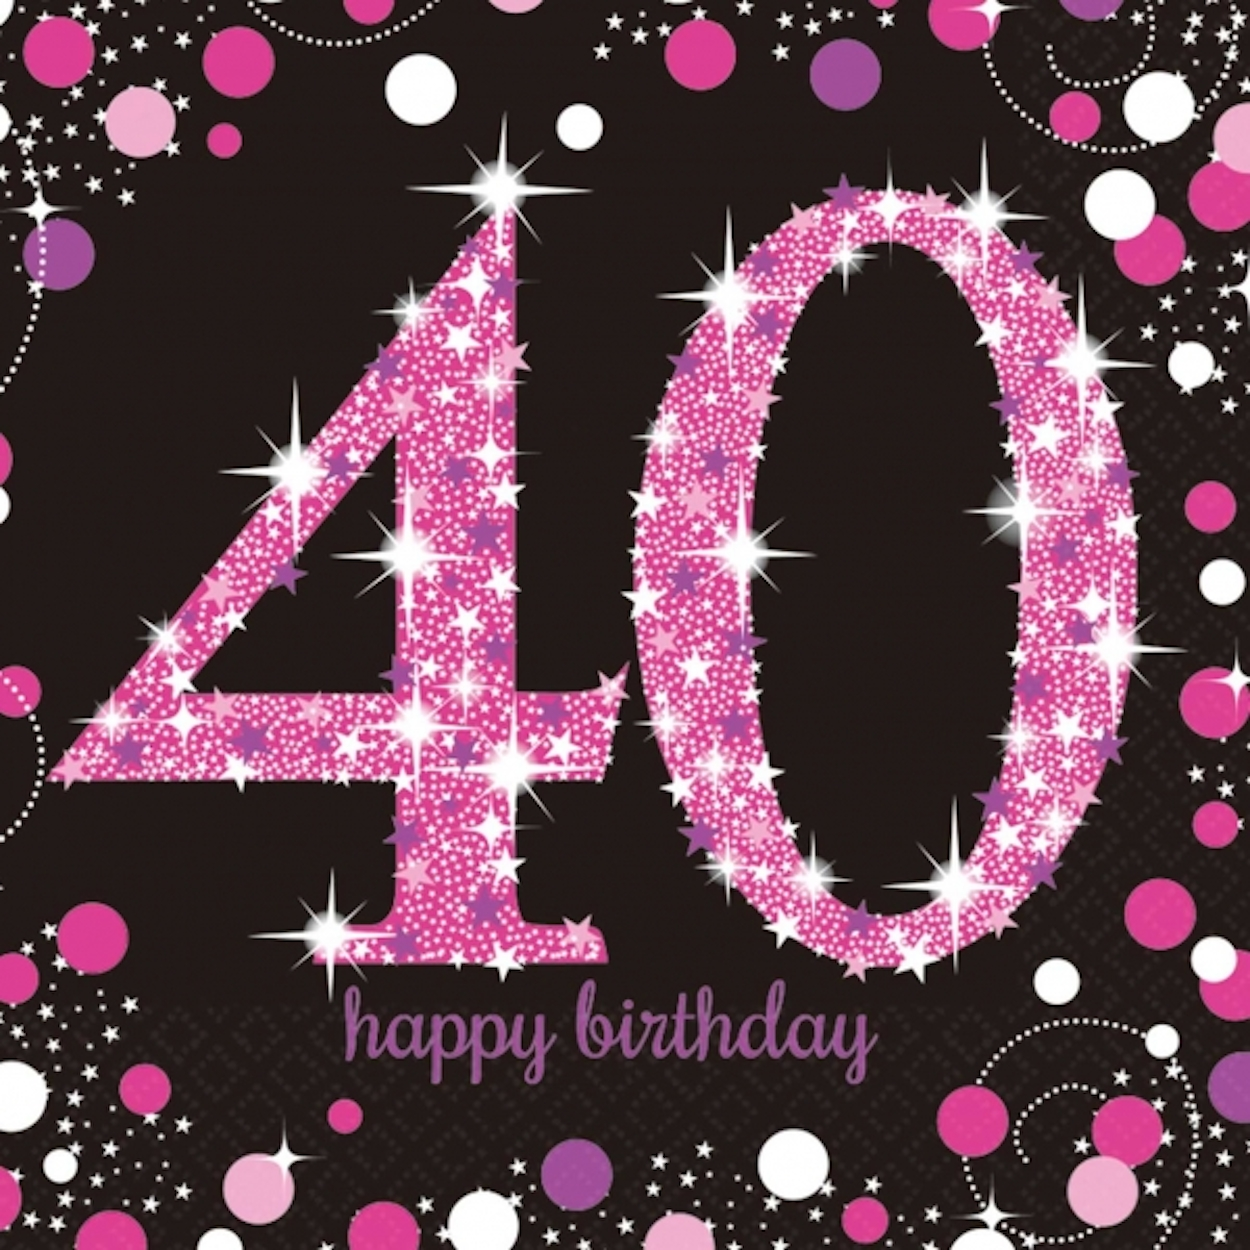 16 X Pink Celebration Age 40 Napkins Pink & Black 40th Birthday Napkins FREE P&P 13051637675